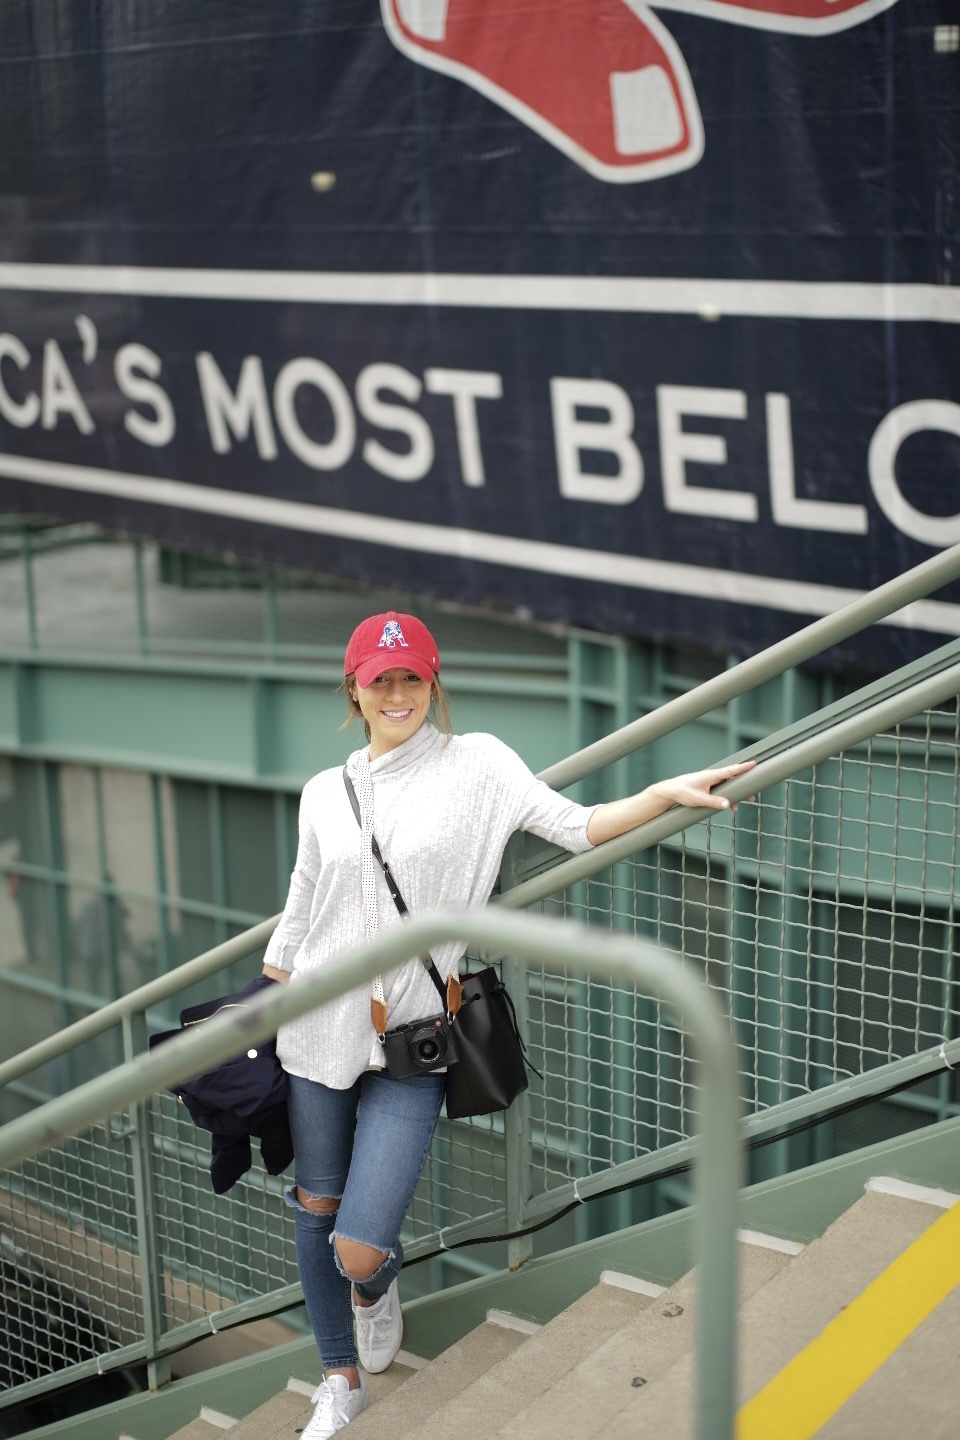 A day at Fenway -